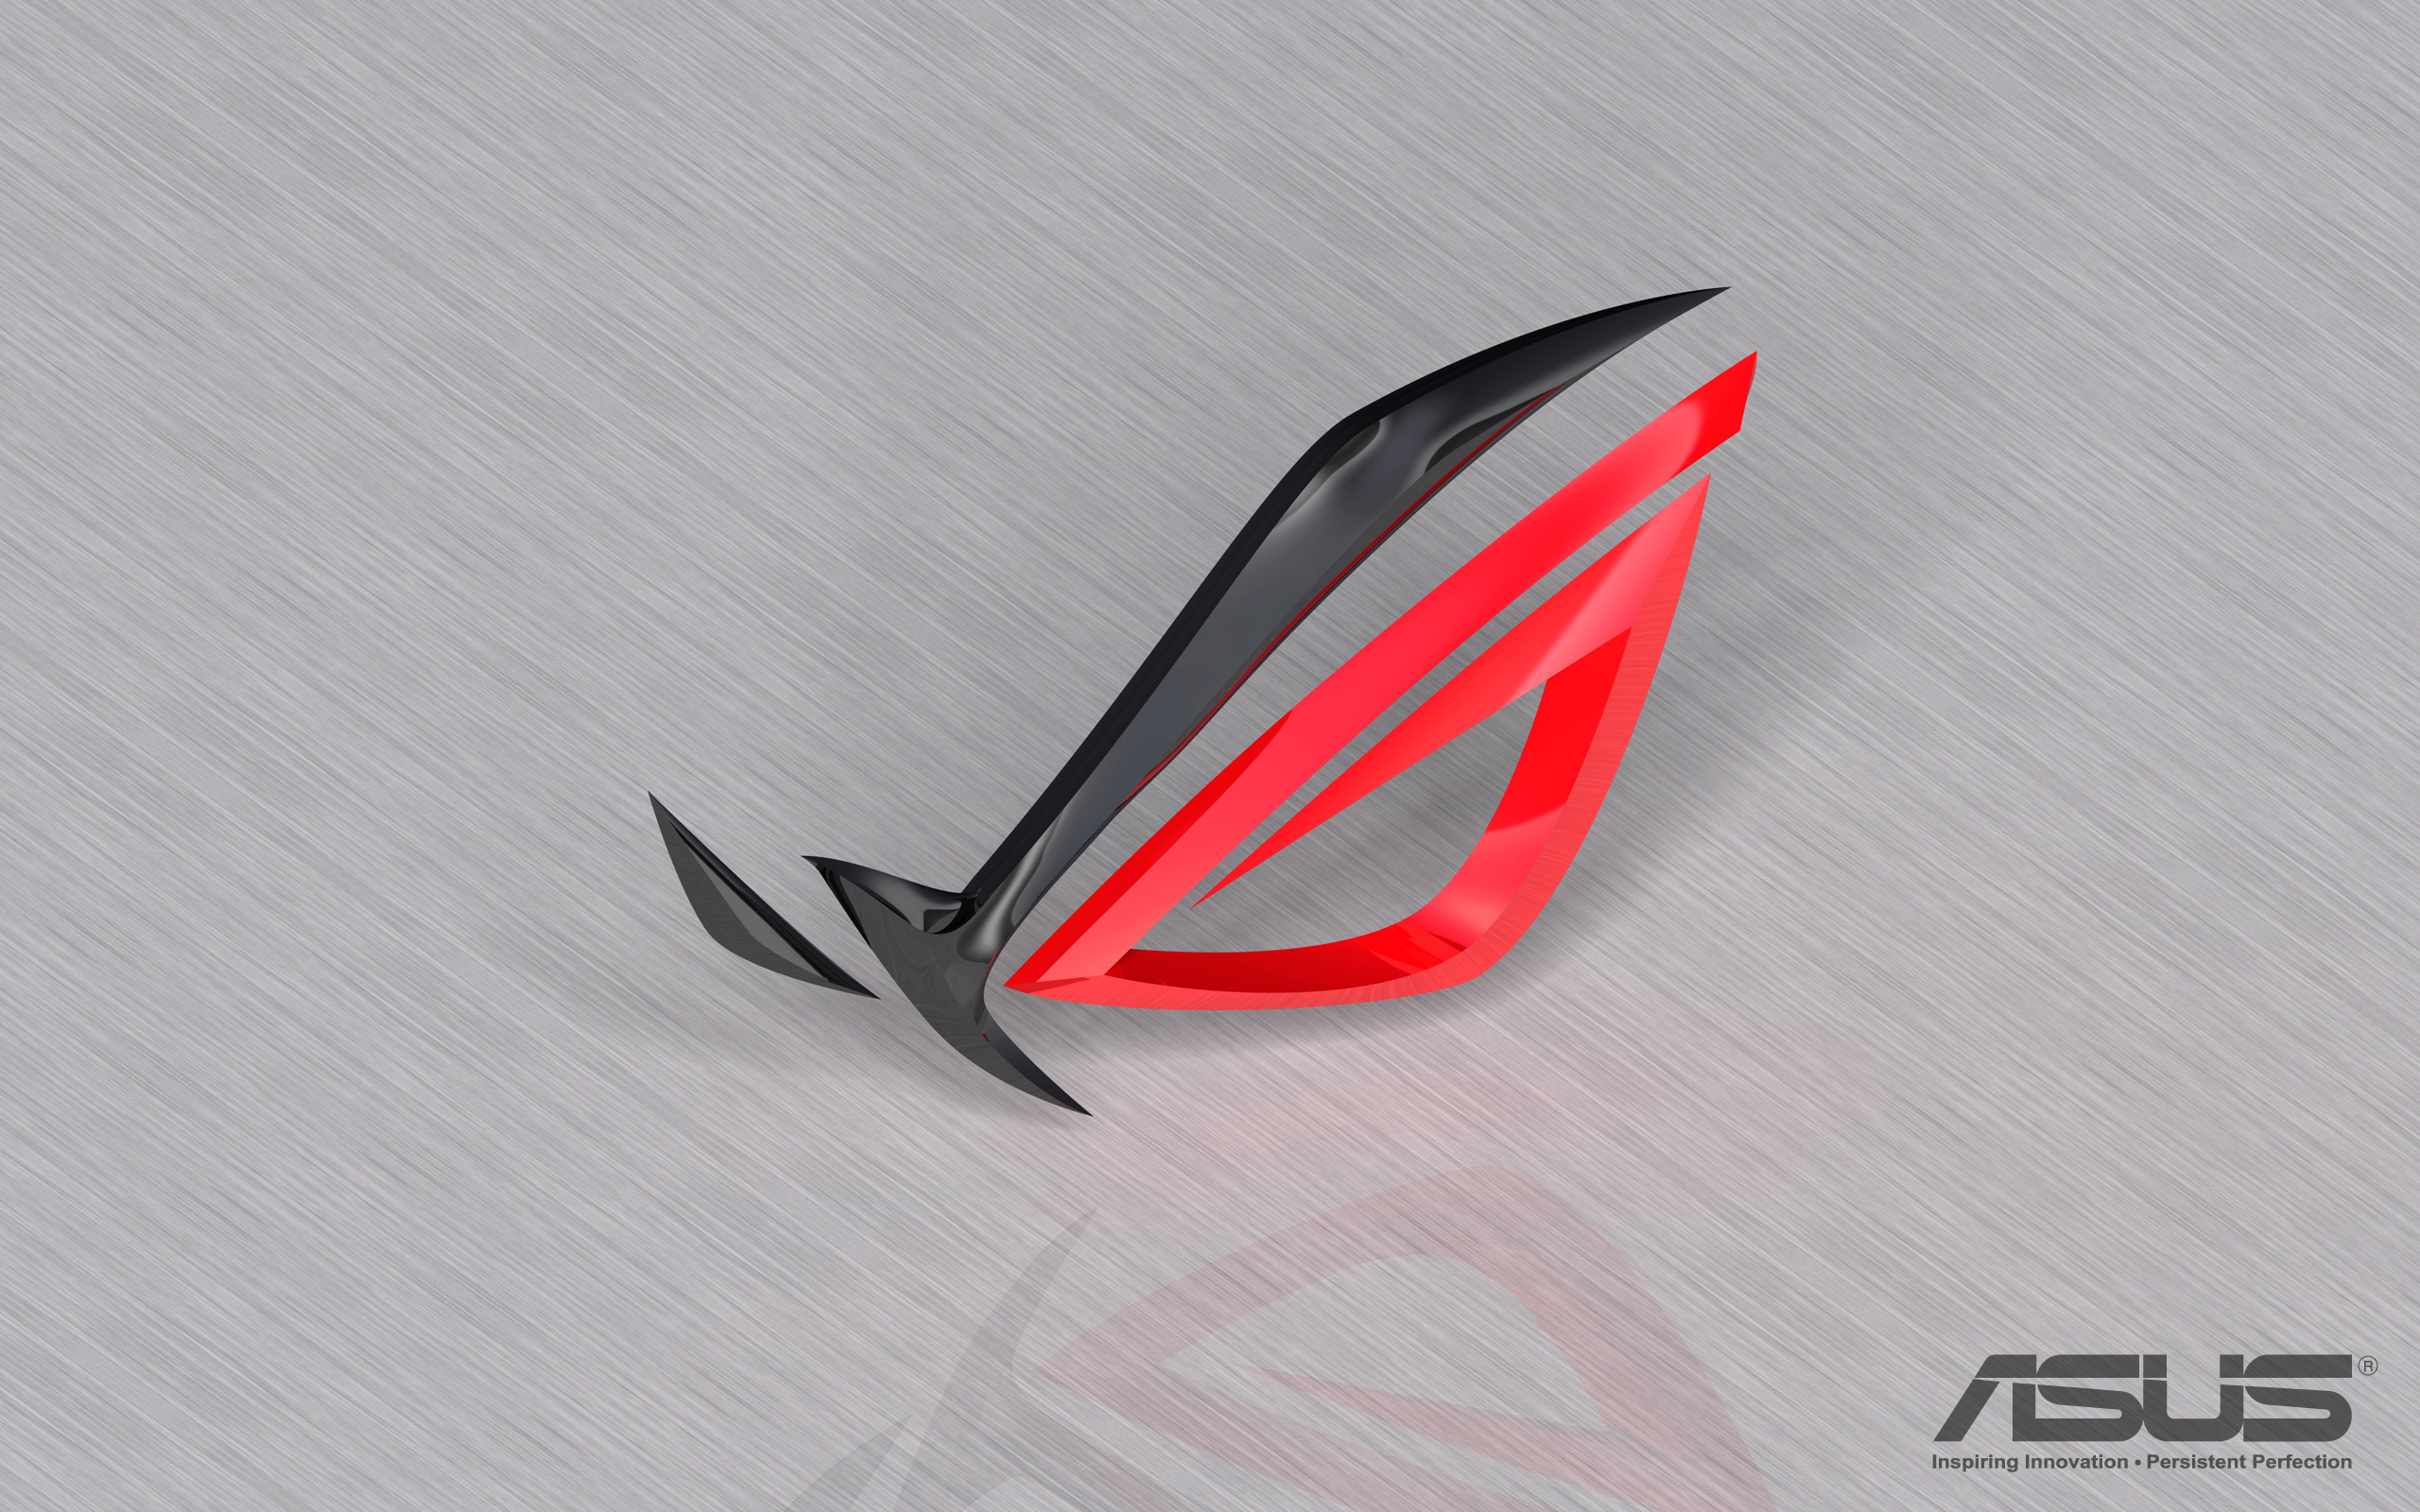 Asus Wallpapers Widescreen: ROG Wallpaper Collection 2013